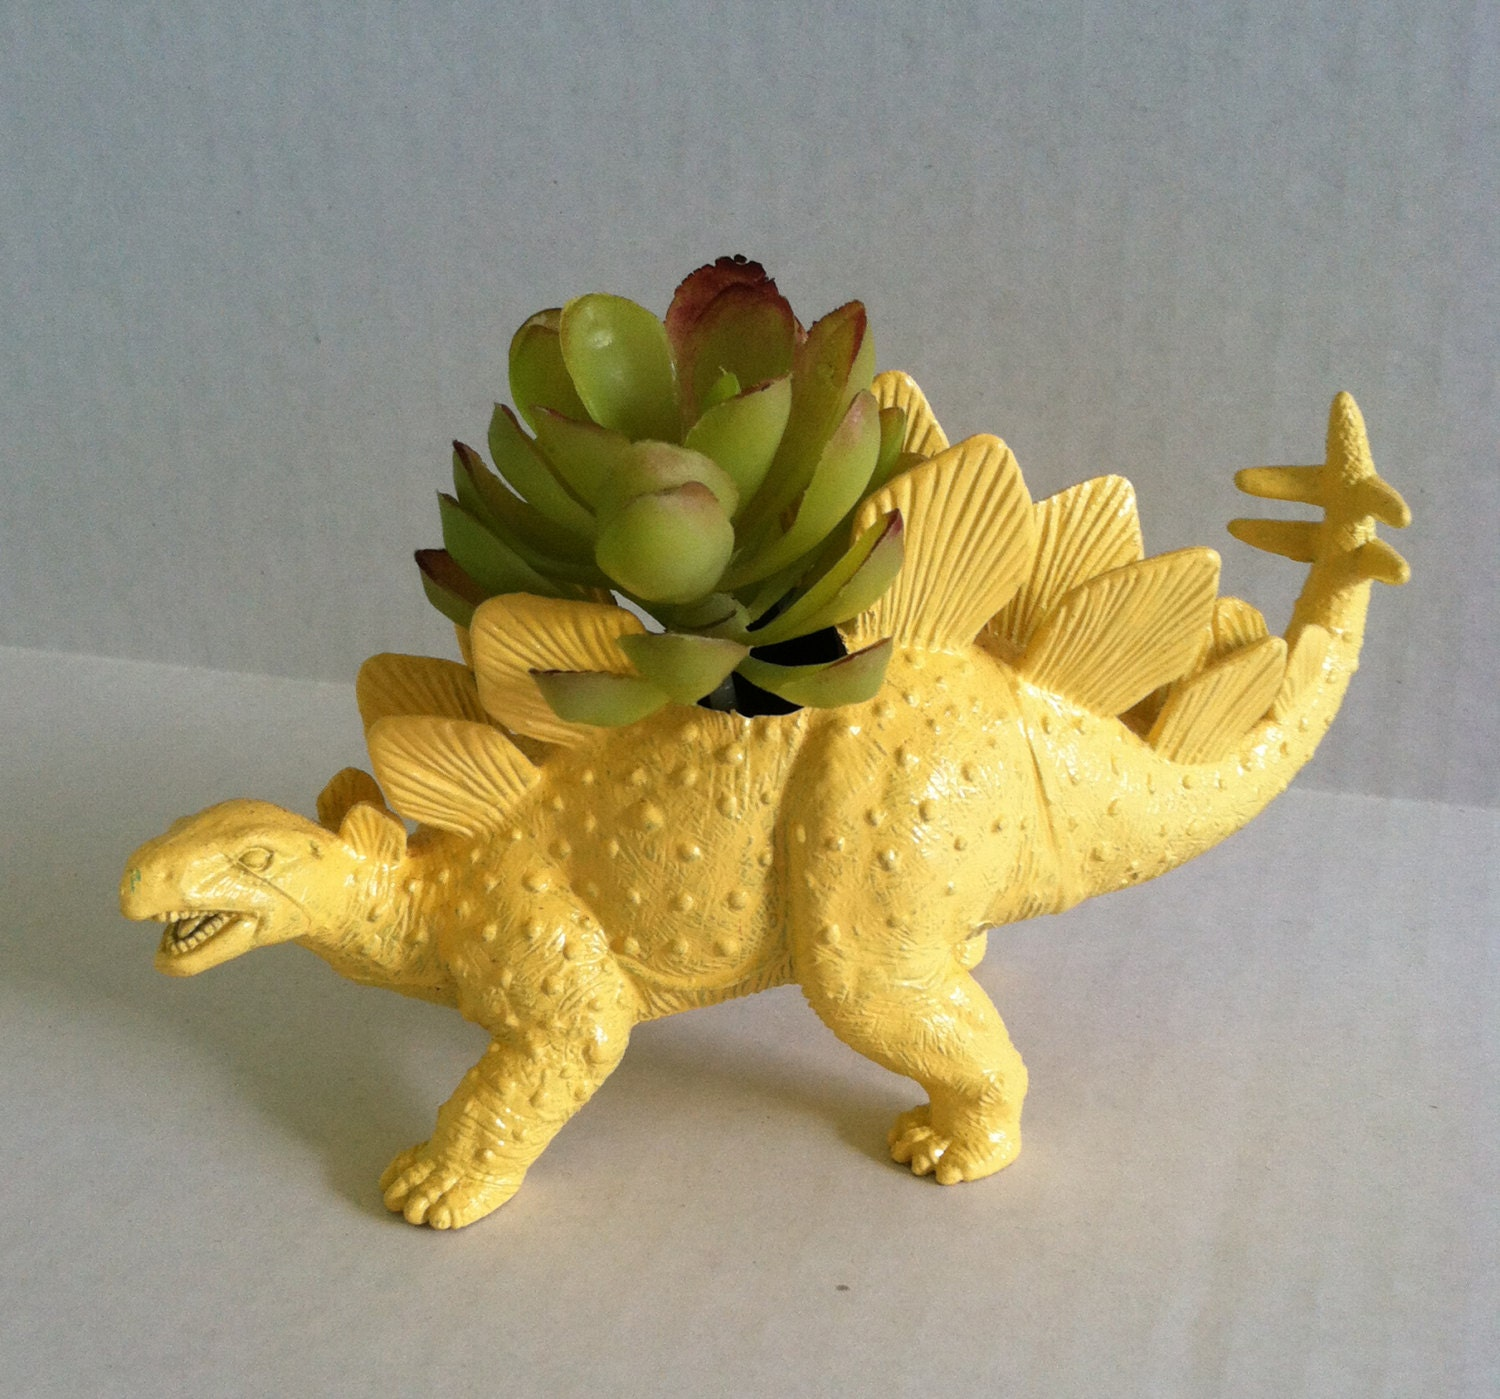 Yellow Dinosaur Planter Ready To Plant And Display At Work Or